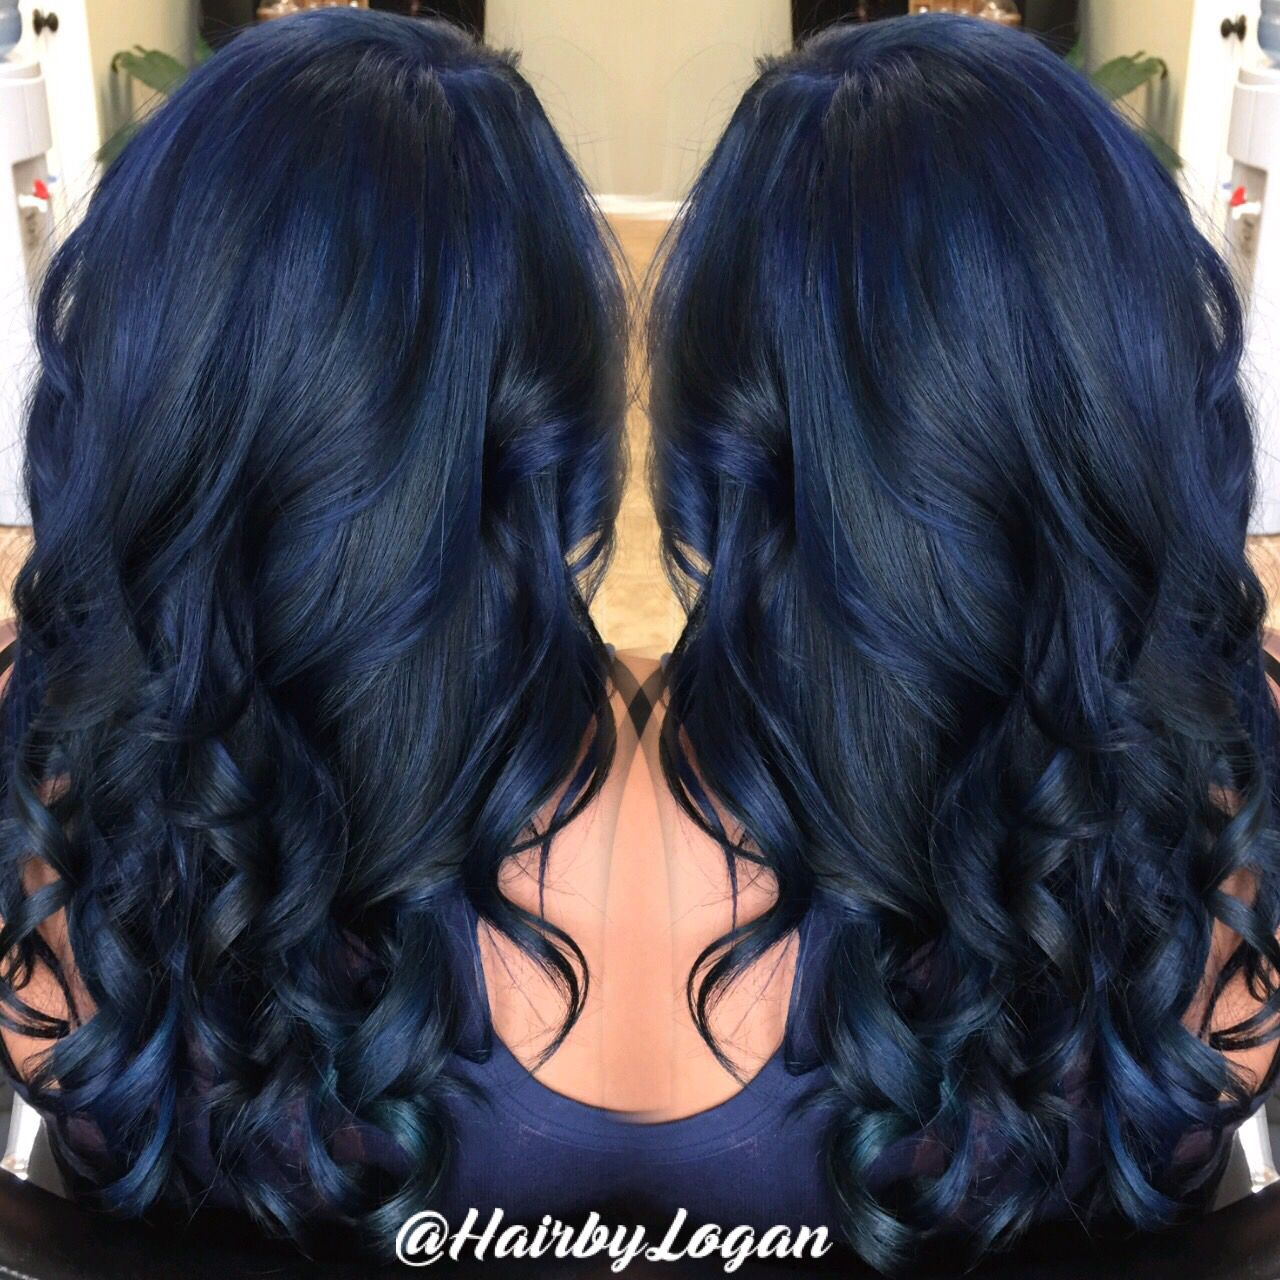 Blueberry Beauty With Images Beauty Hair Color Beautiful